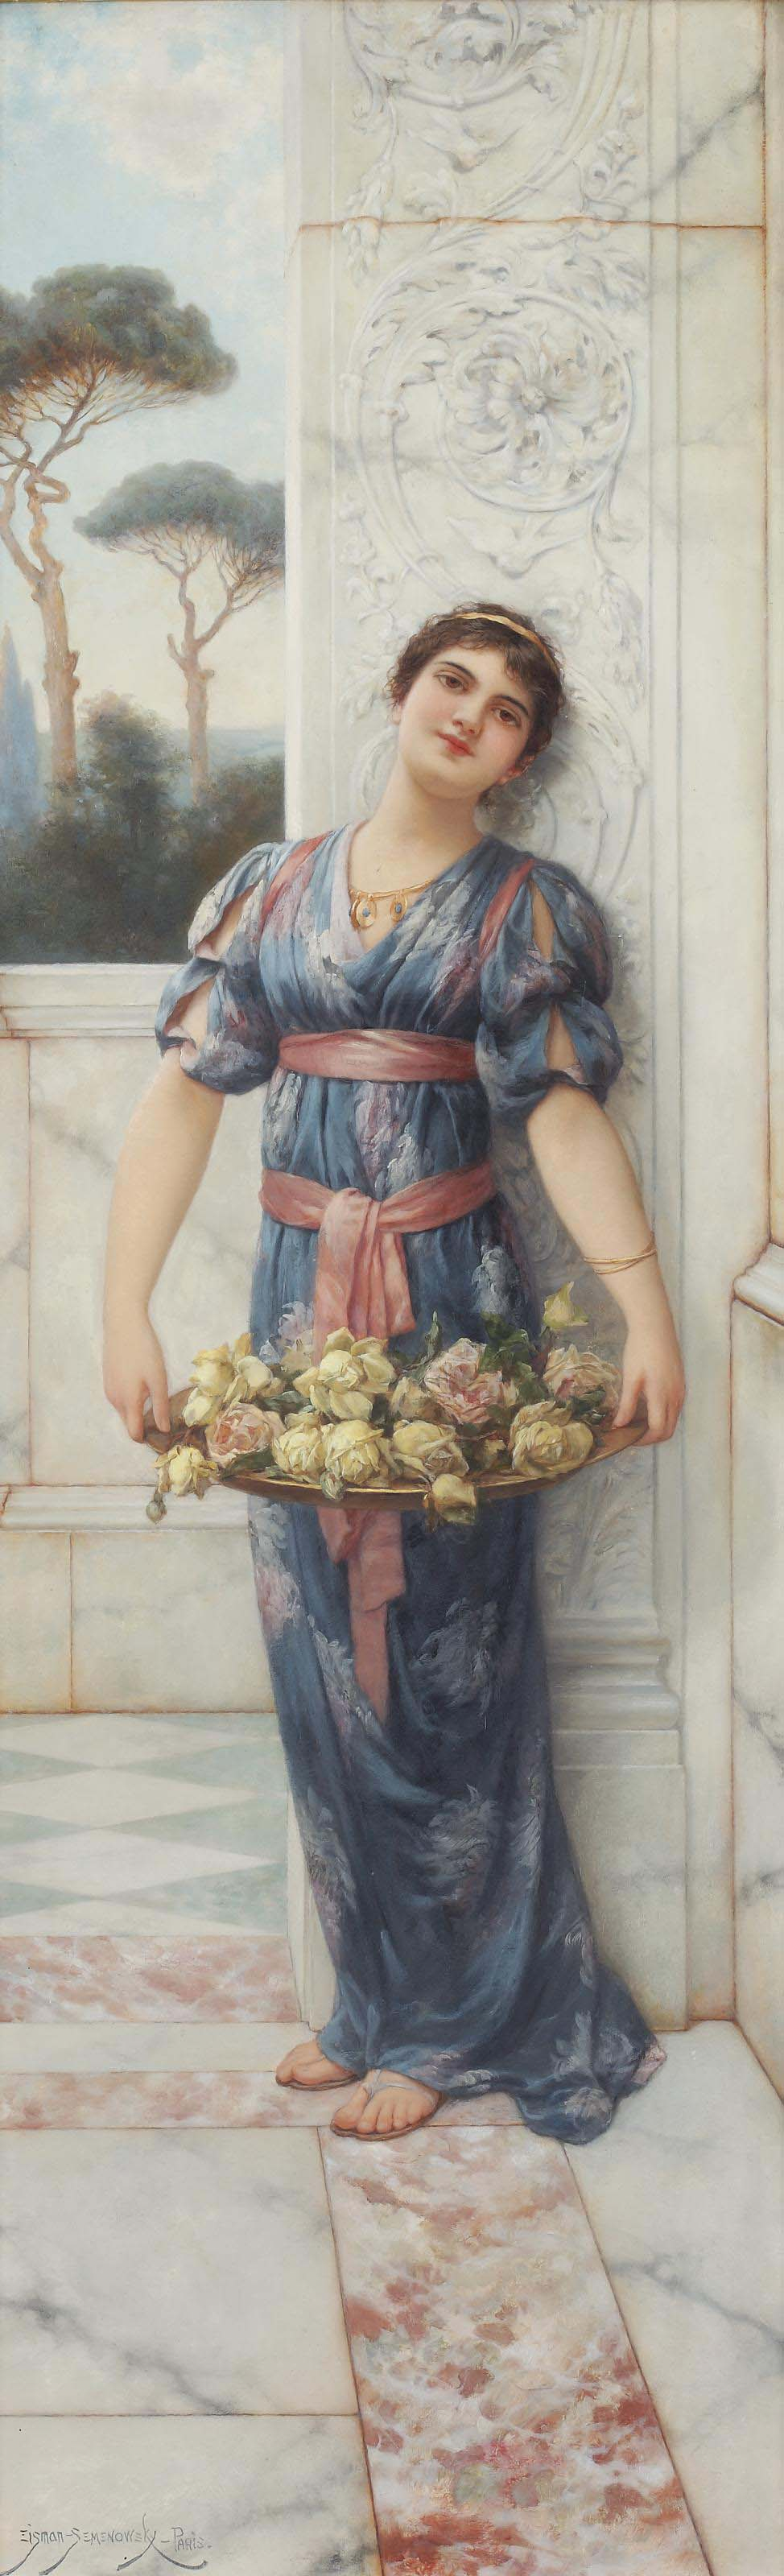 A classical beauty with roses